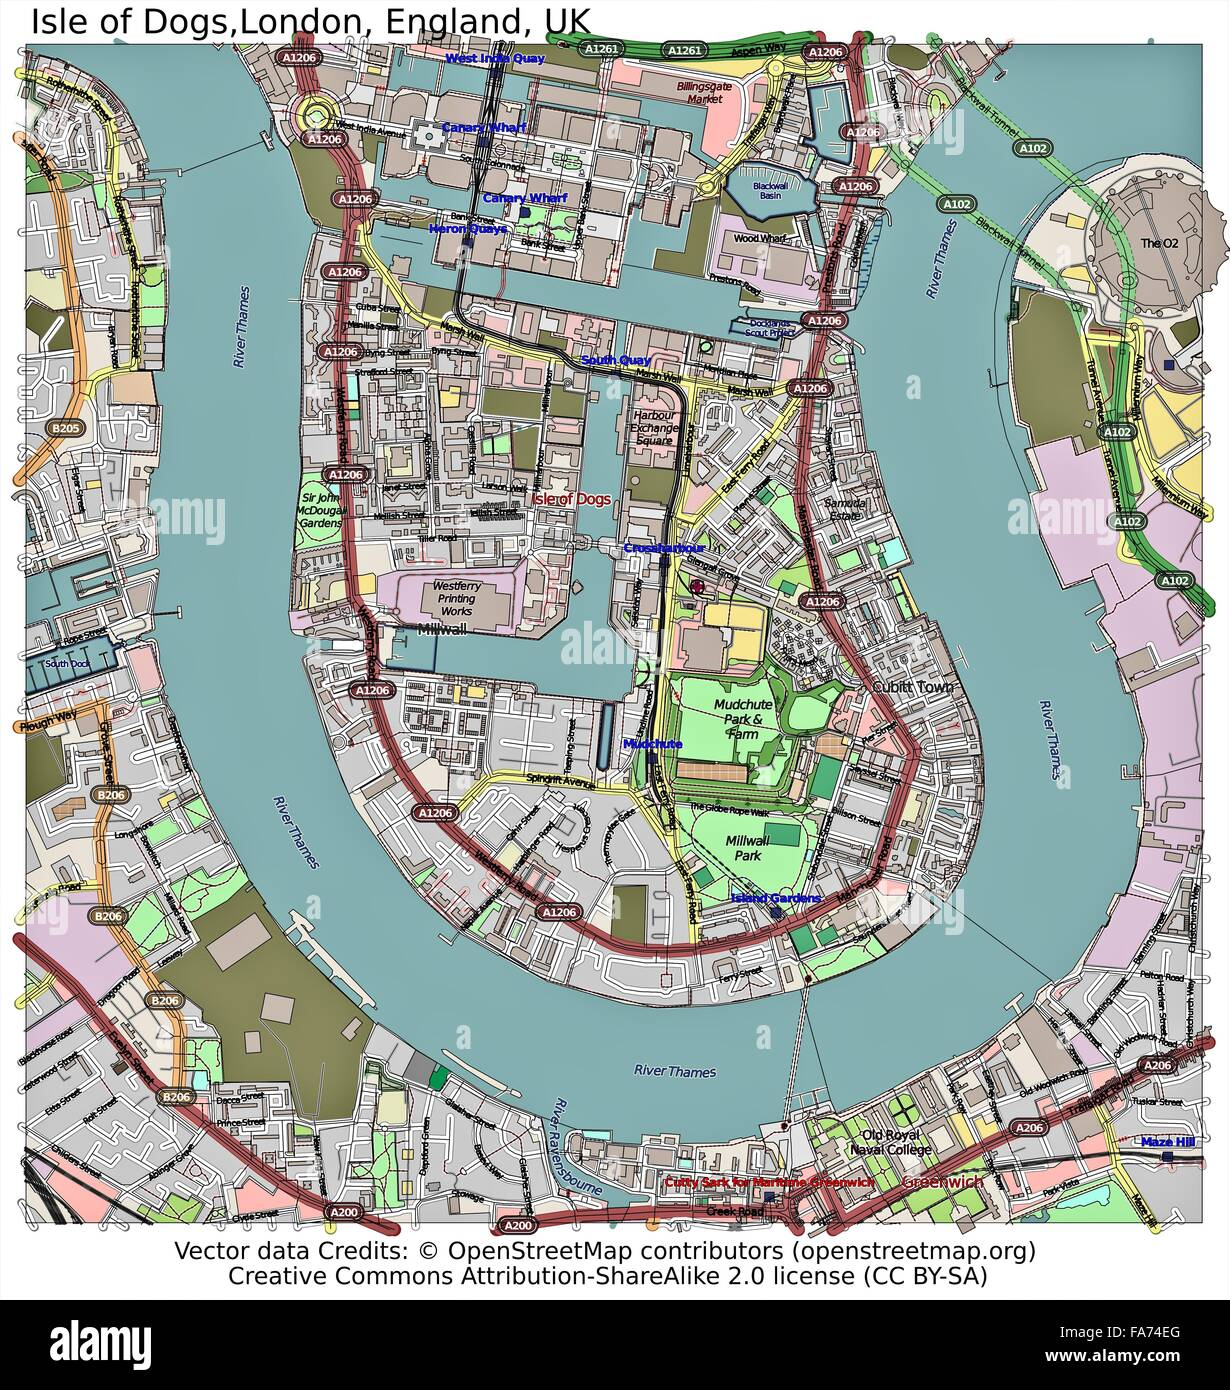 Isle Of Dogs Map Isle Of Dogs Map Stock Photos & Isle Of Dogs Map Stock Images   Alamy Isle Of Dogs Map